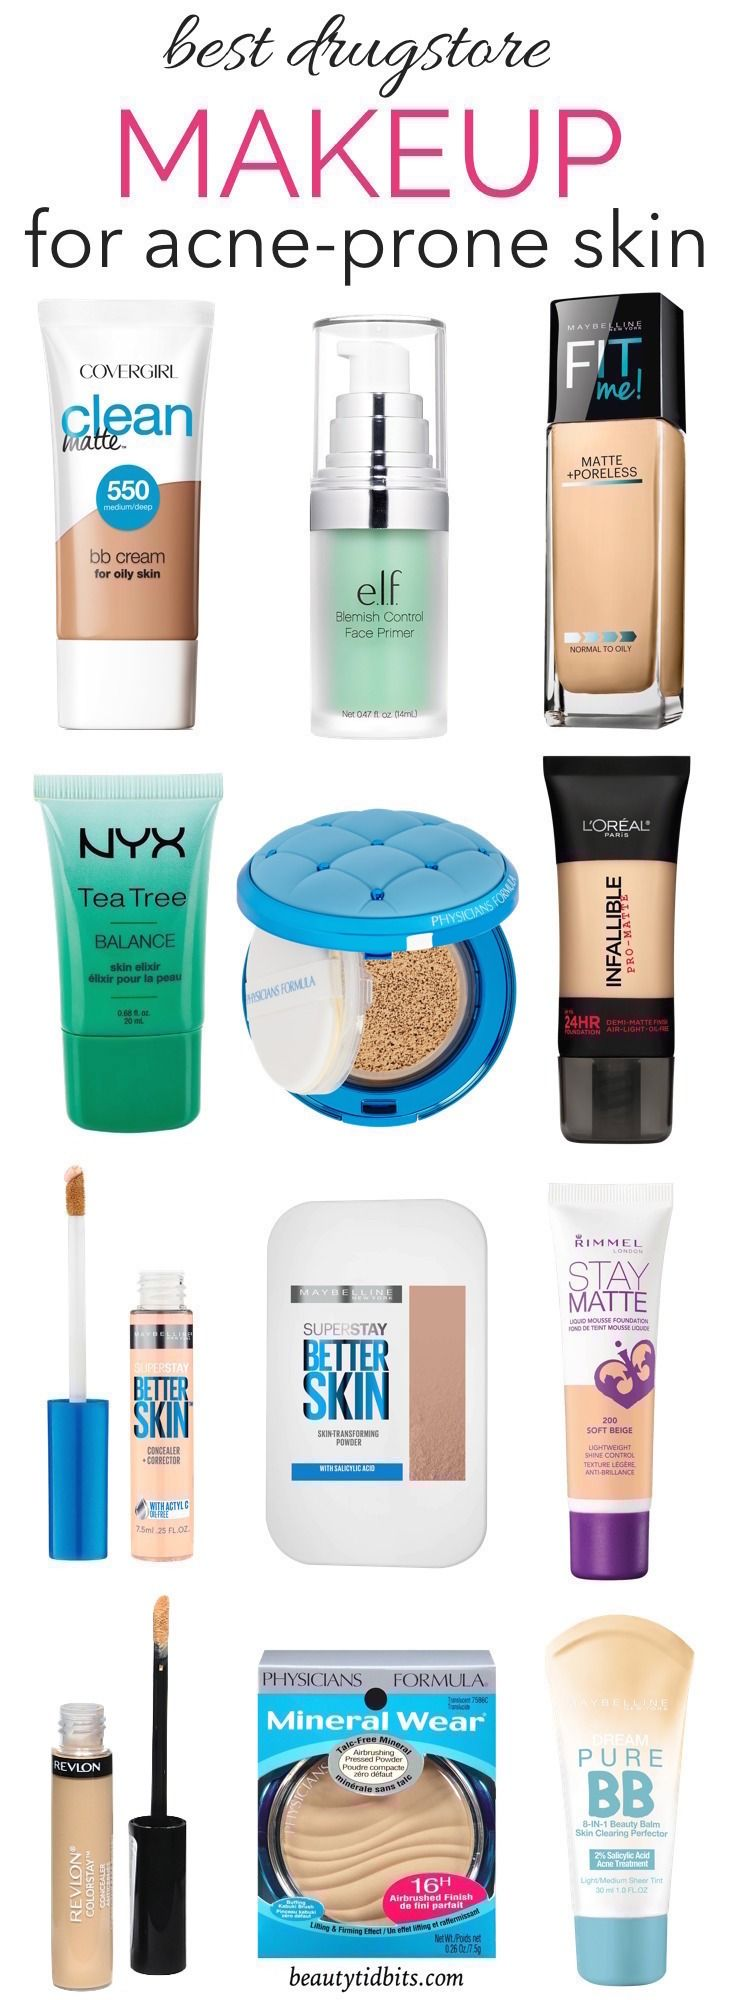 The Best Drugstore Makeup For AcneProne Skin (Mostly